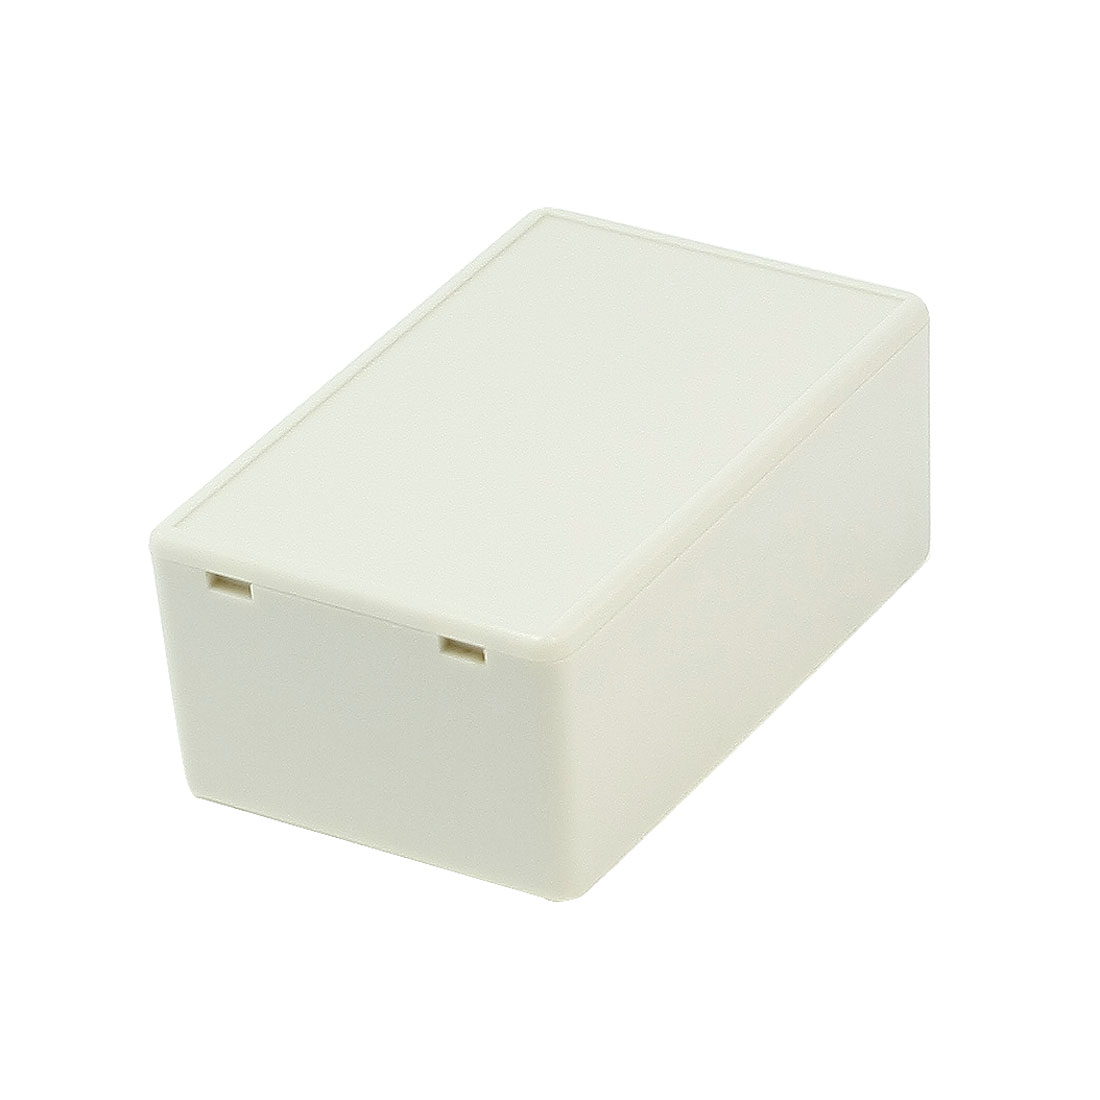 70mm x 45mm x 30mm Plastic Enclosure Case DIY Junction Box